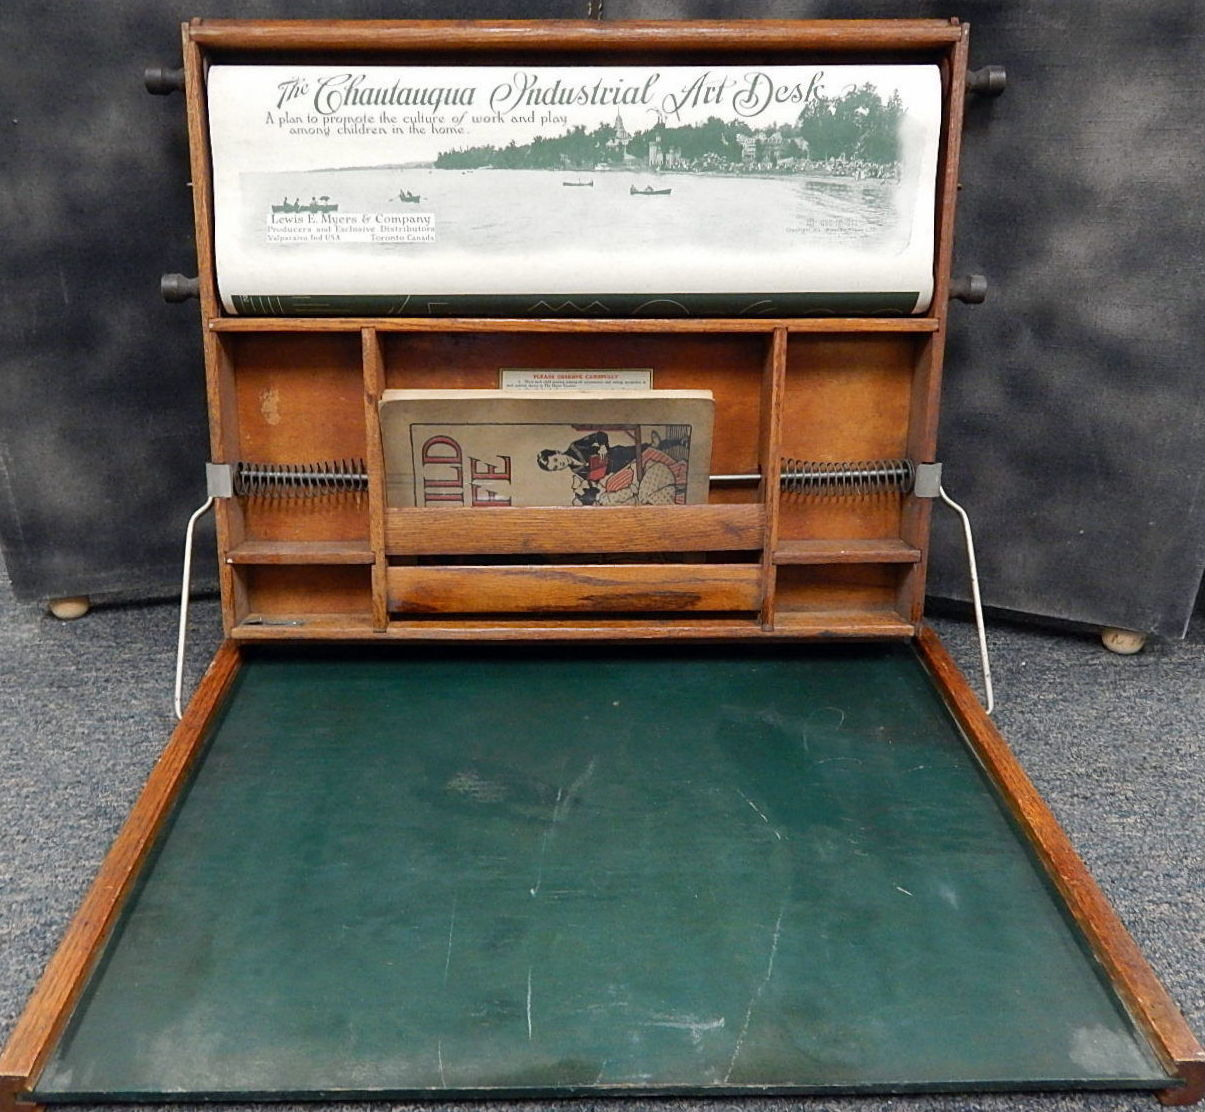 Antique 1923 Bluebird Childs Lewis Meyers Student Art Desk - Blogs Curiosity Consignment